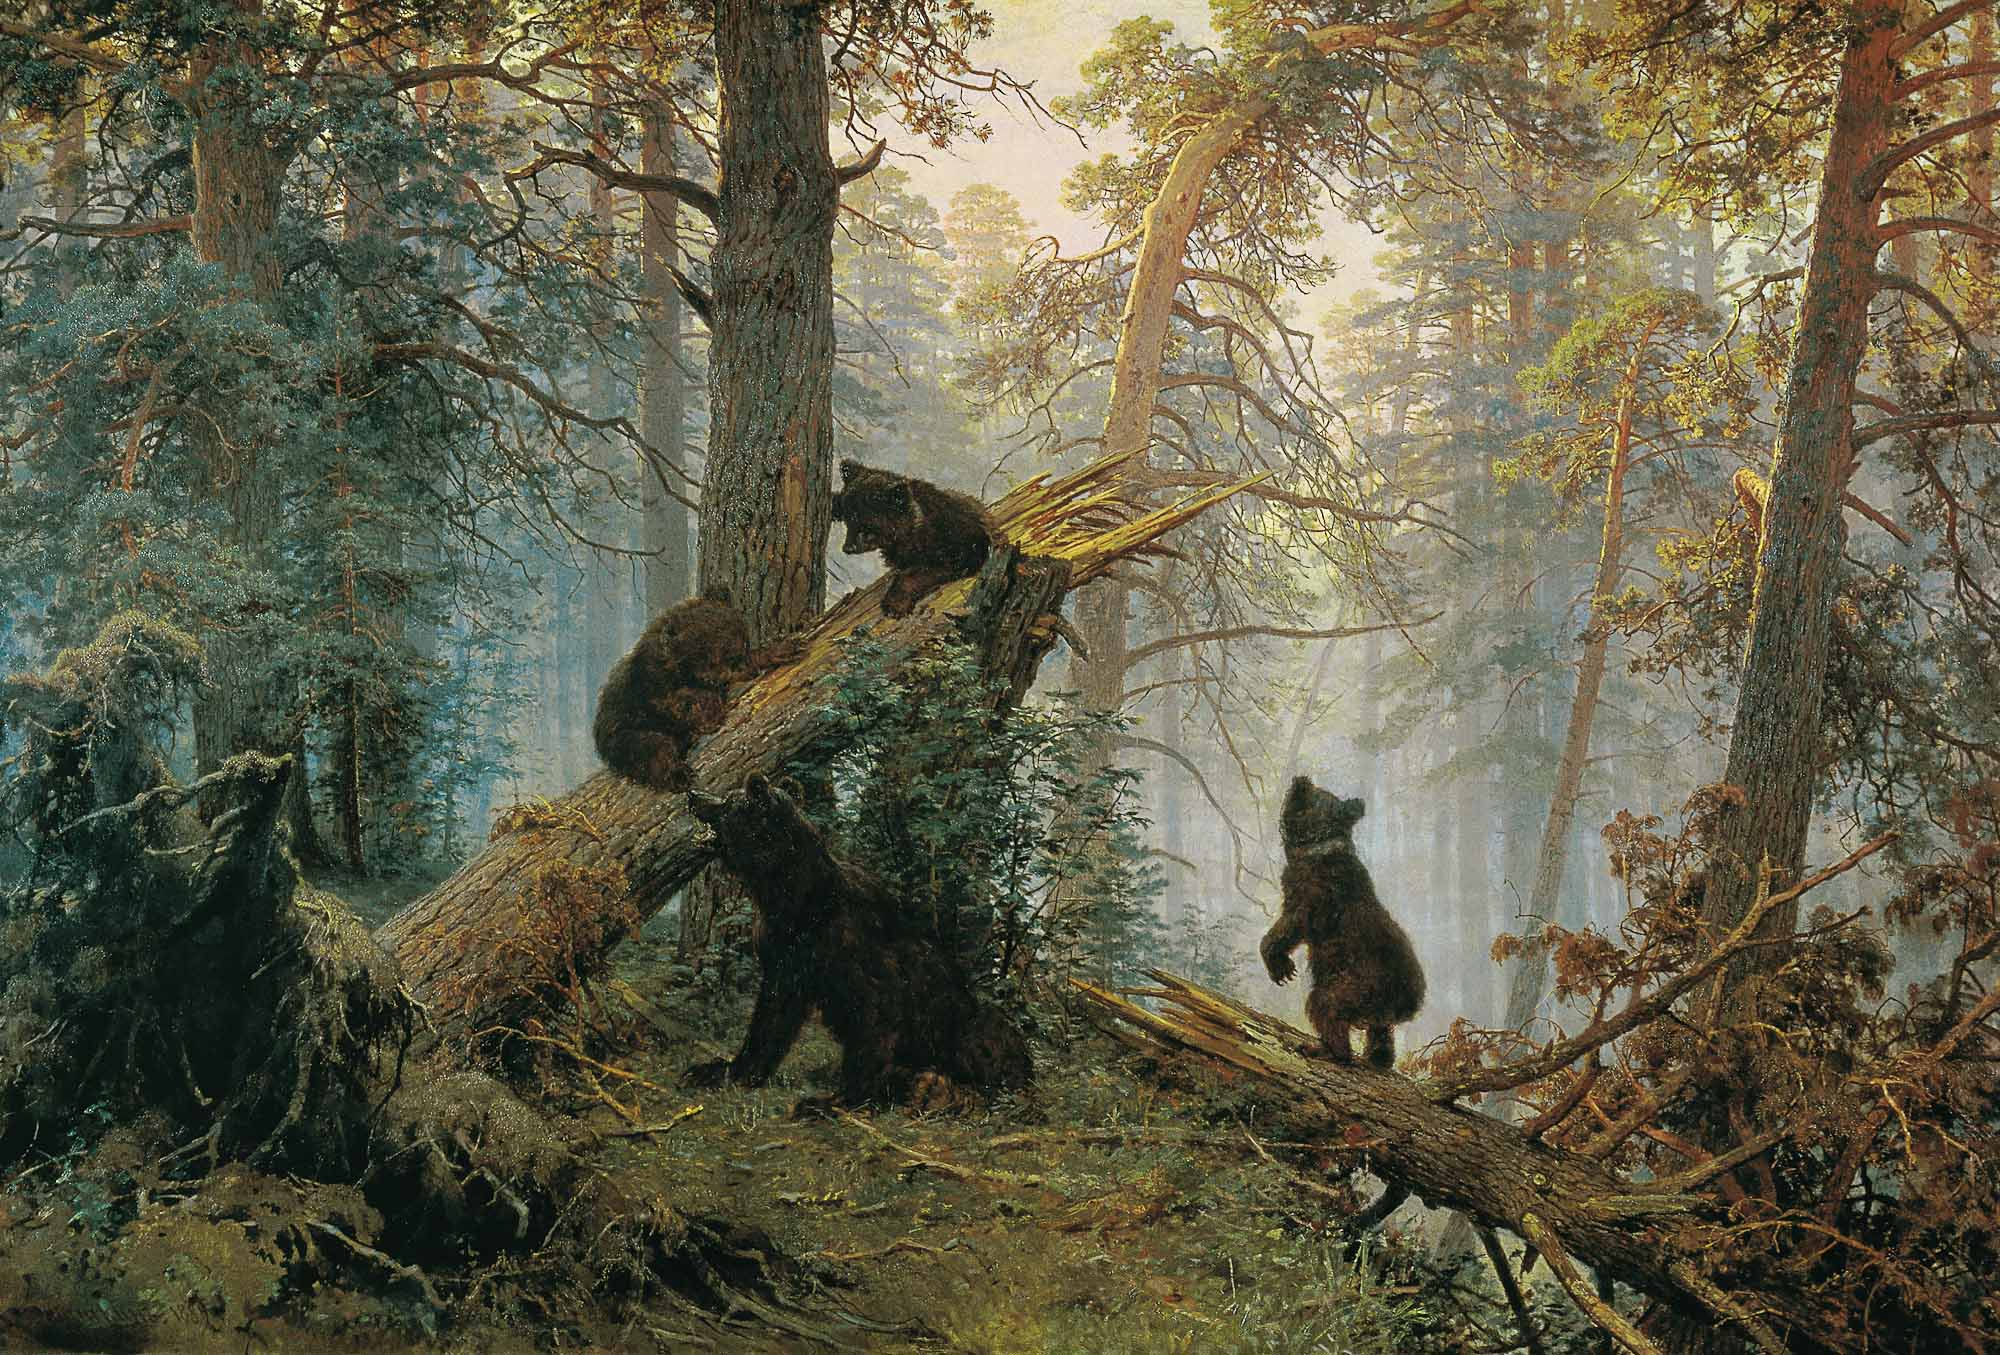 Ivan Shishkin - Morning in a pine forest, oil on canvas (1889)